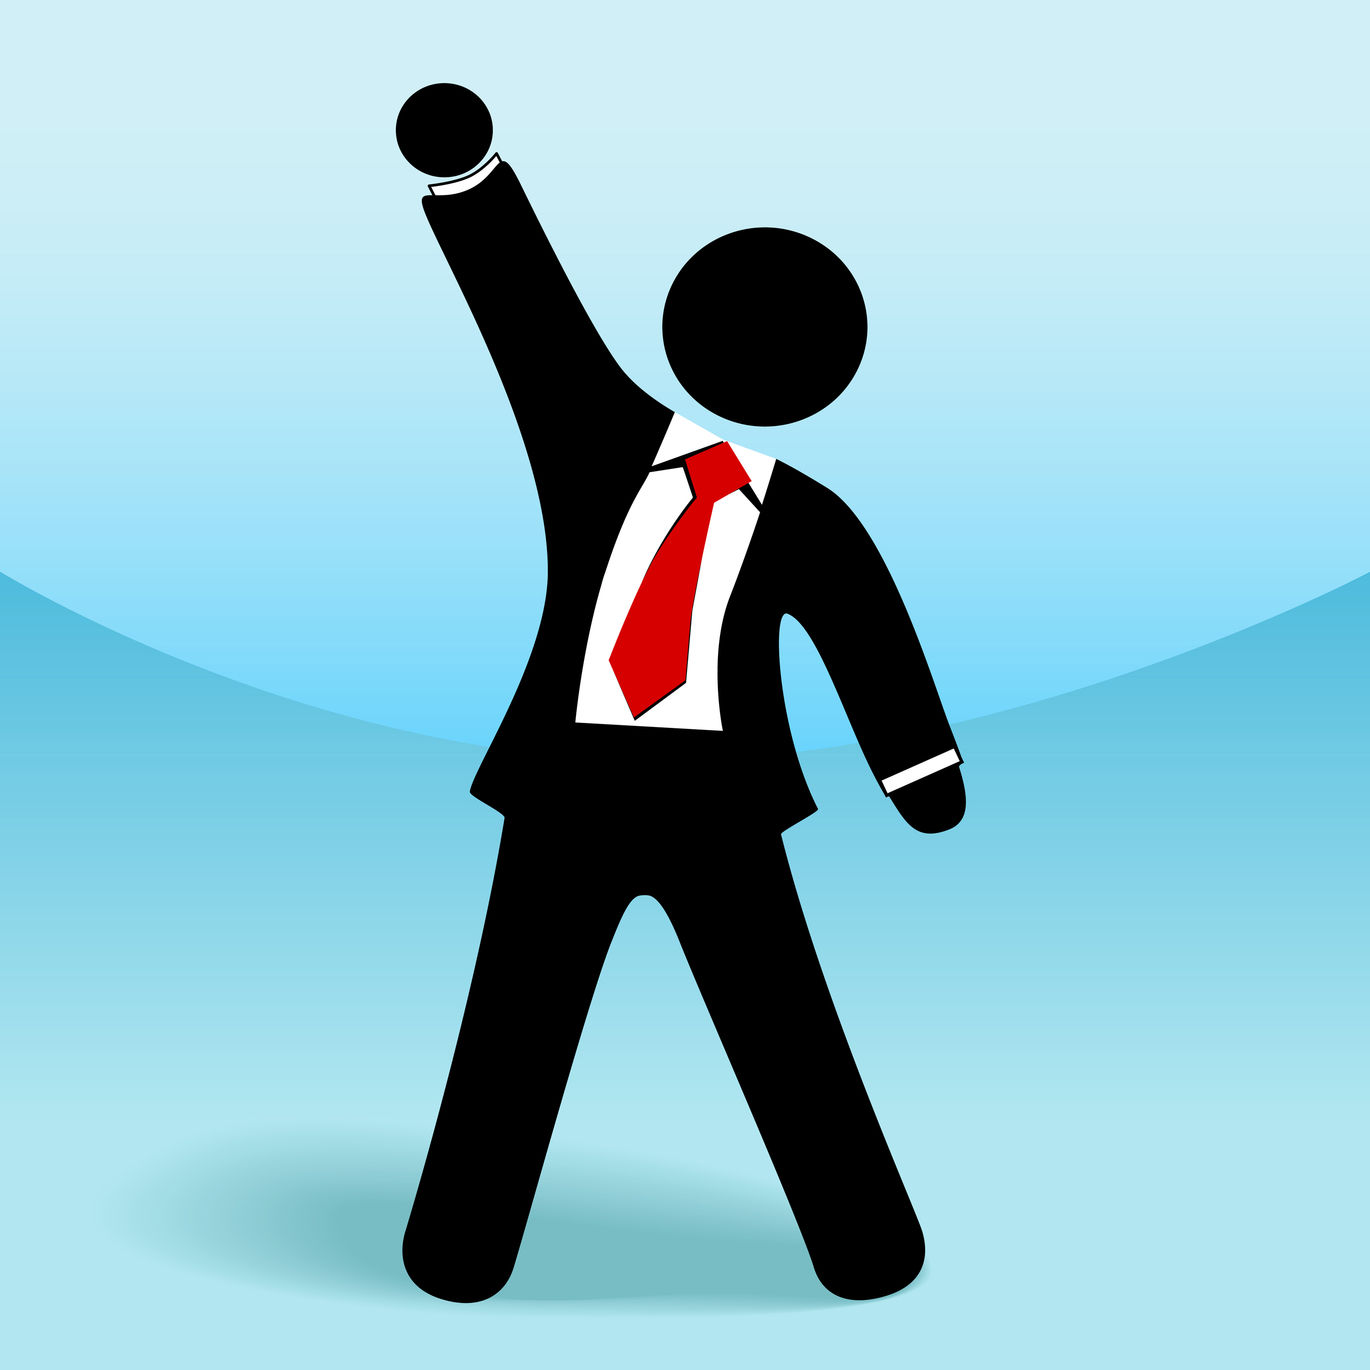 Clipart green man arms in air image download ExecuNet 6 Habits of Extraordinary Bosses image download